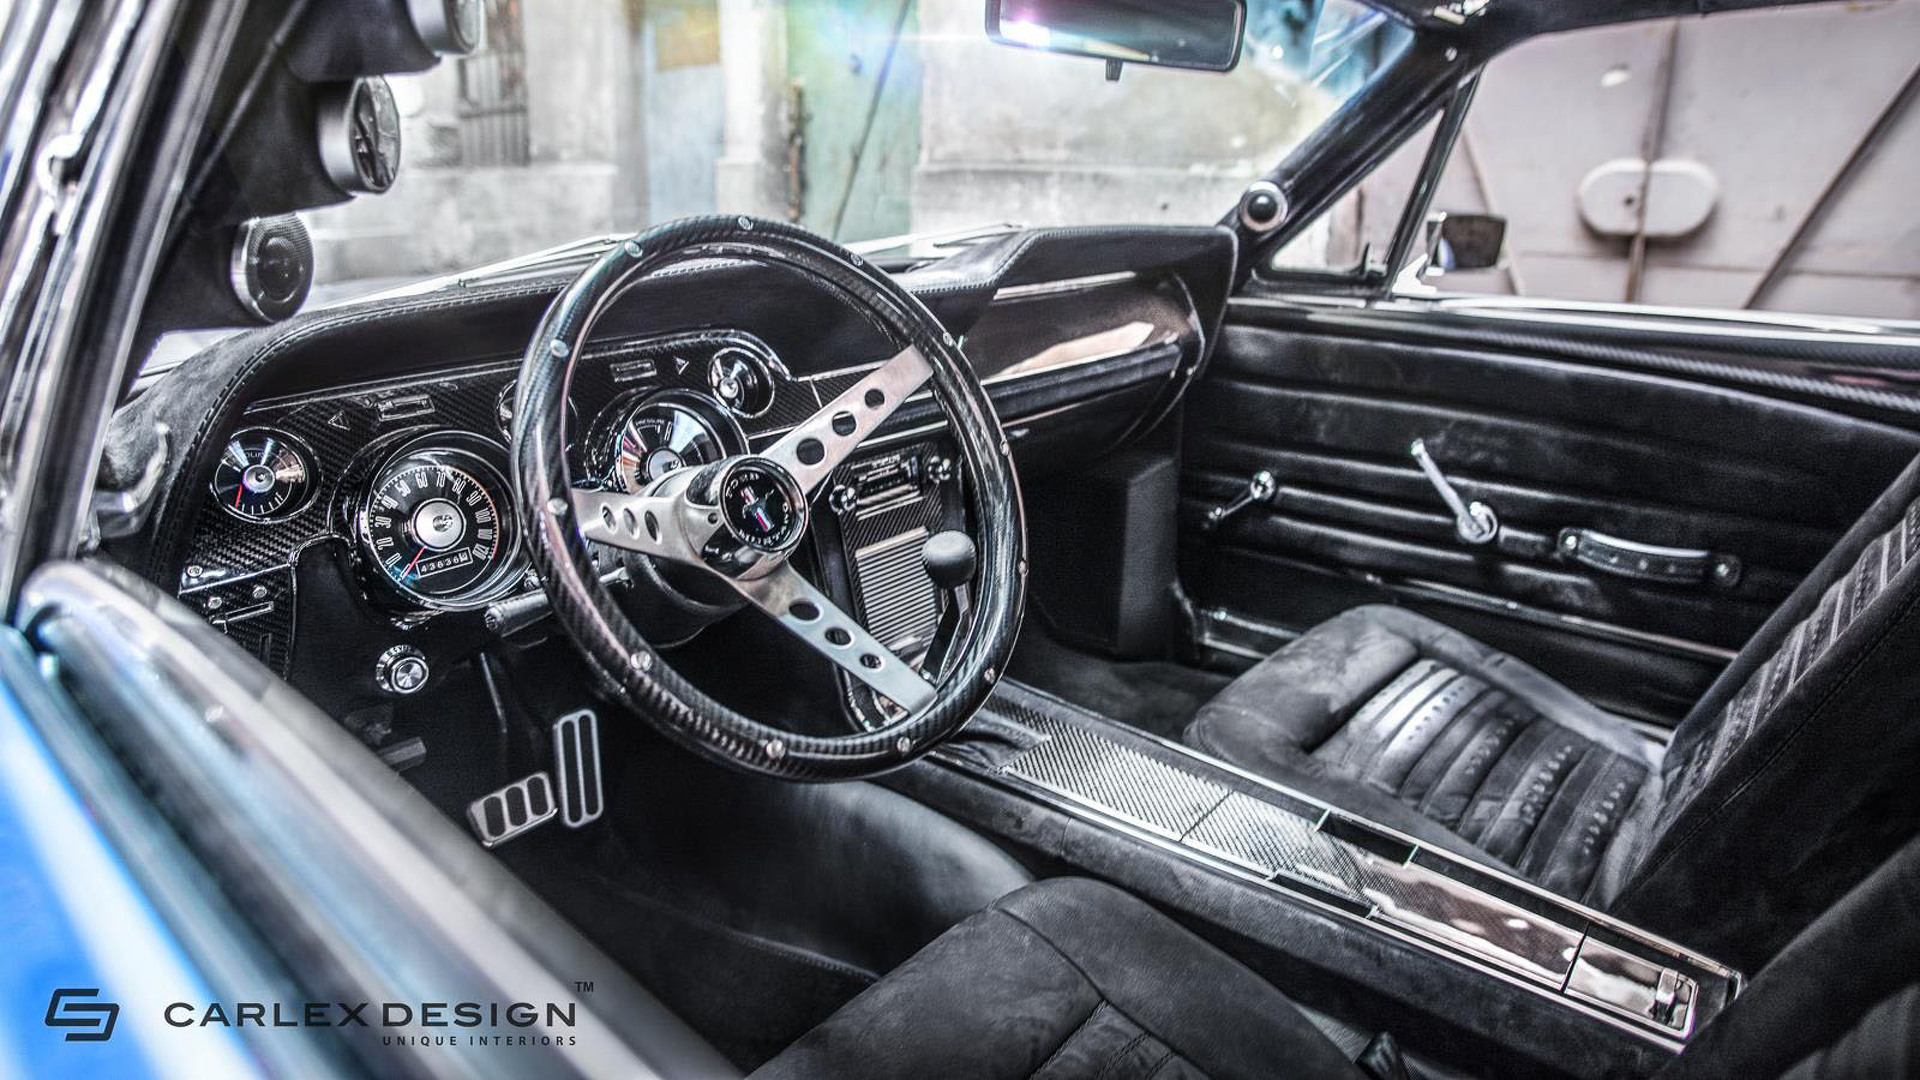 1967 ford mustang gets a modern interior by carlex design - Interior ford mustang ...